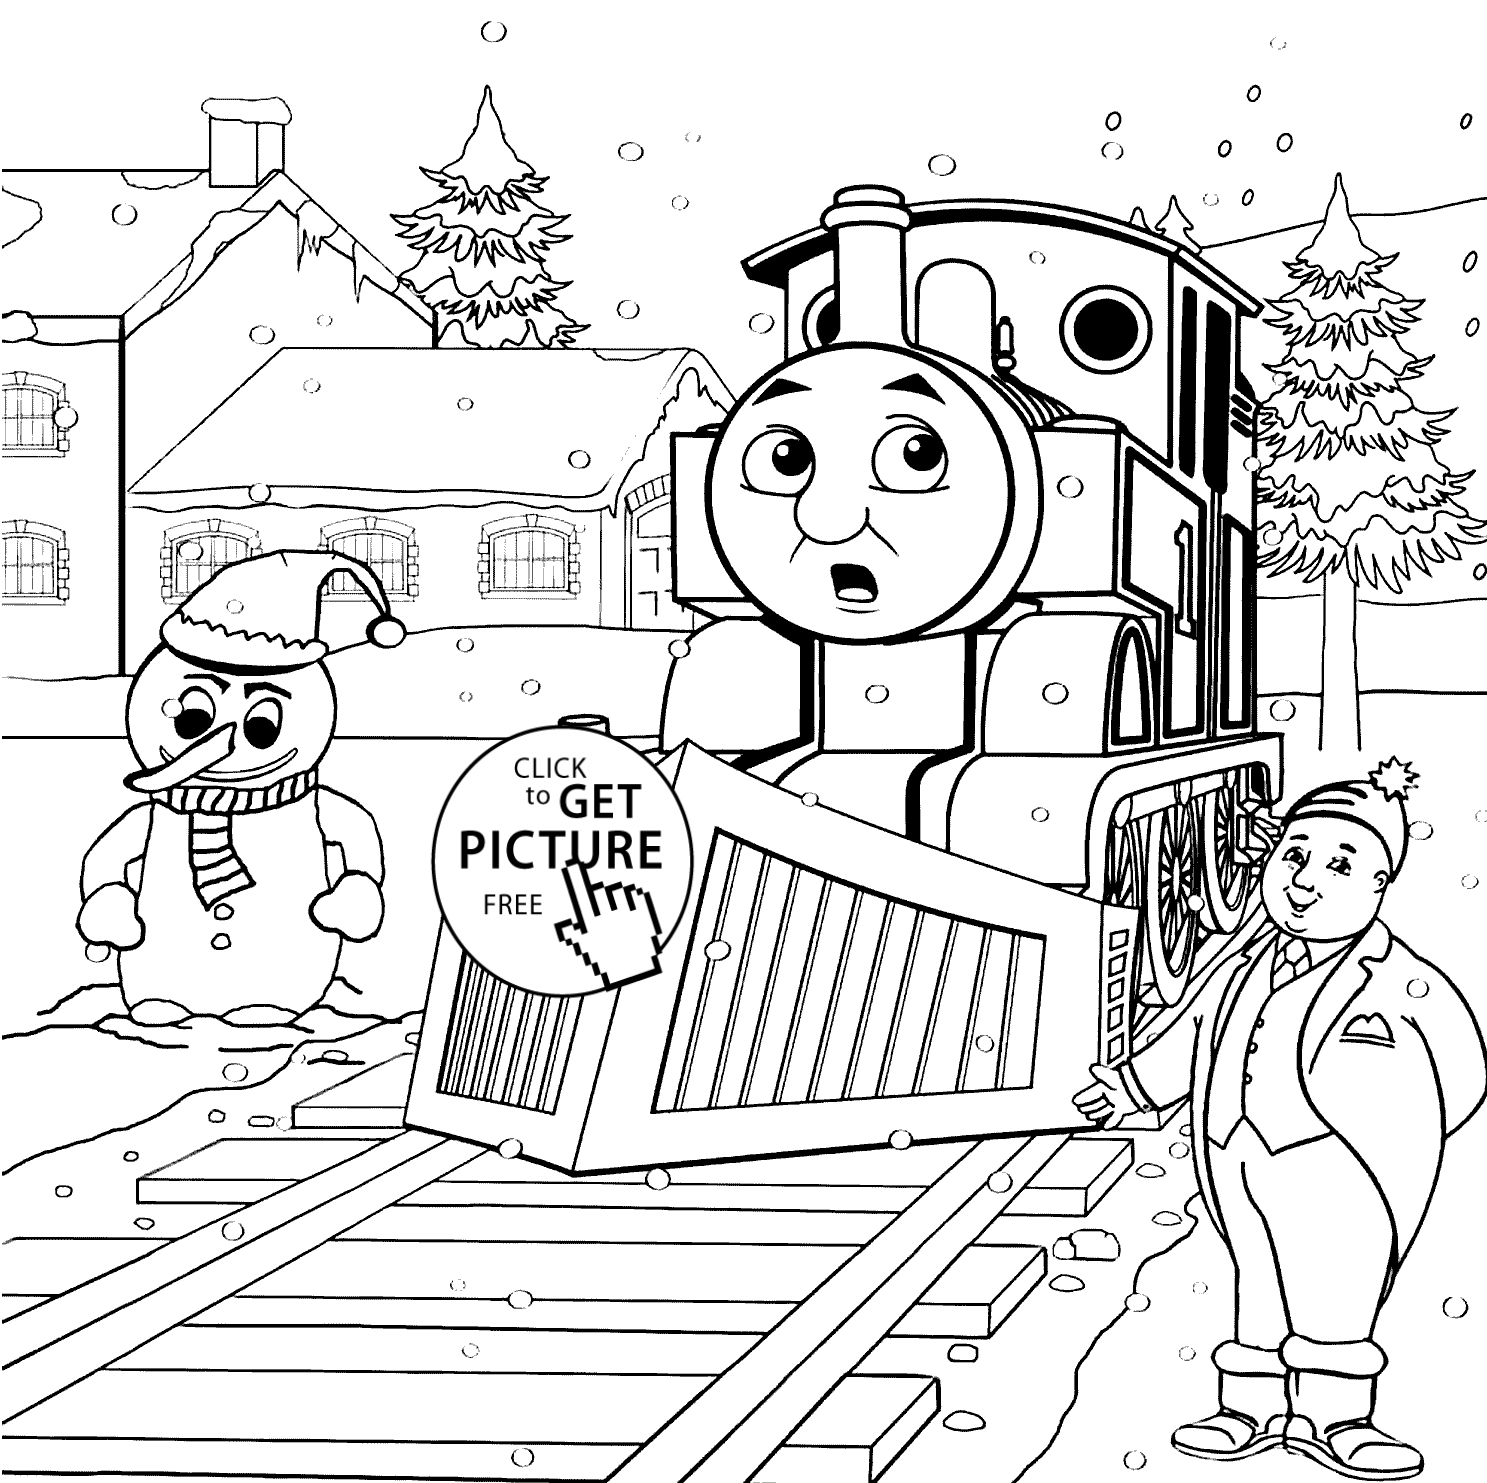 colouring pages thomas fun learn free worksheets for kid thomas friends colouring thomas pages